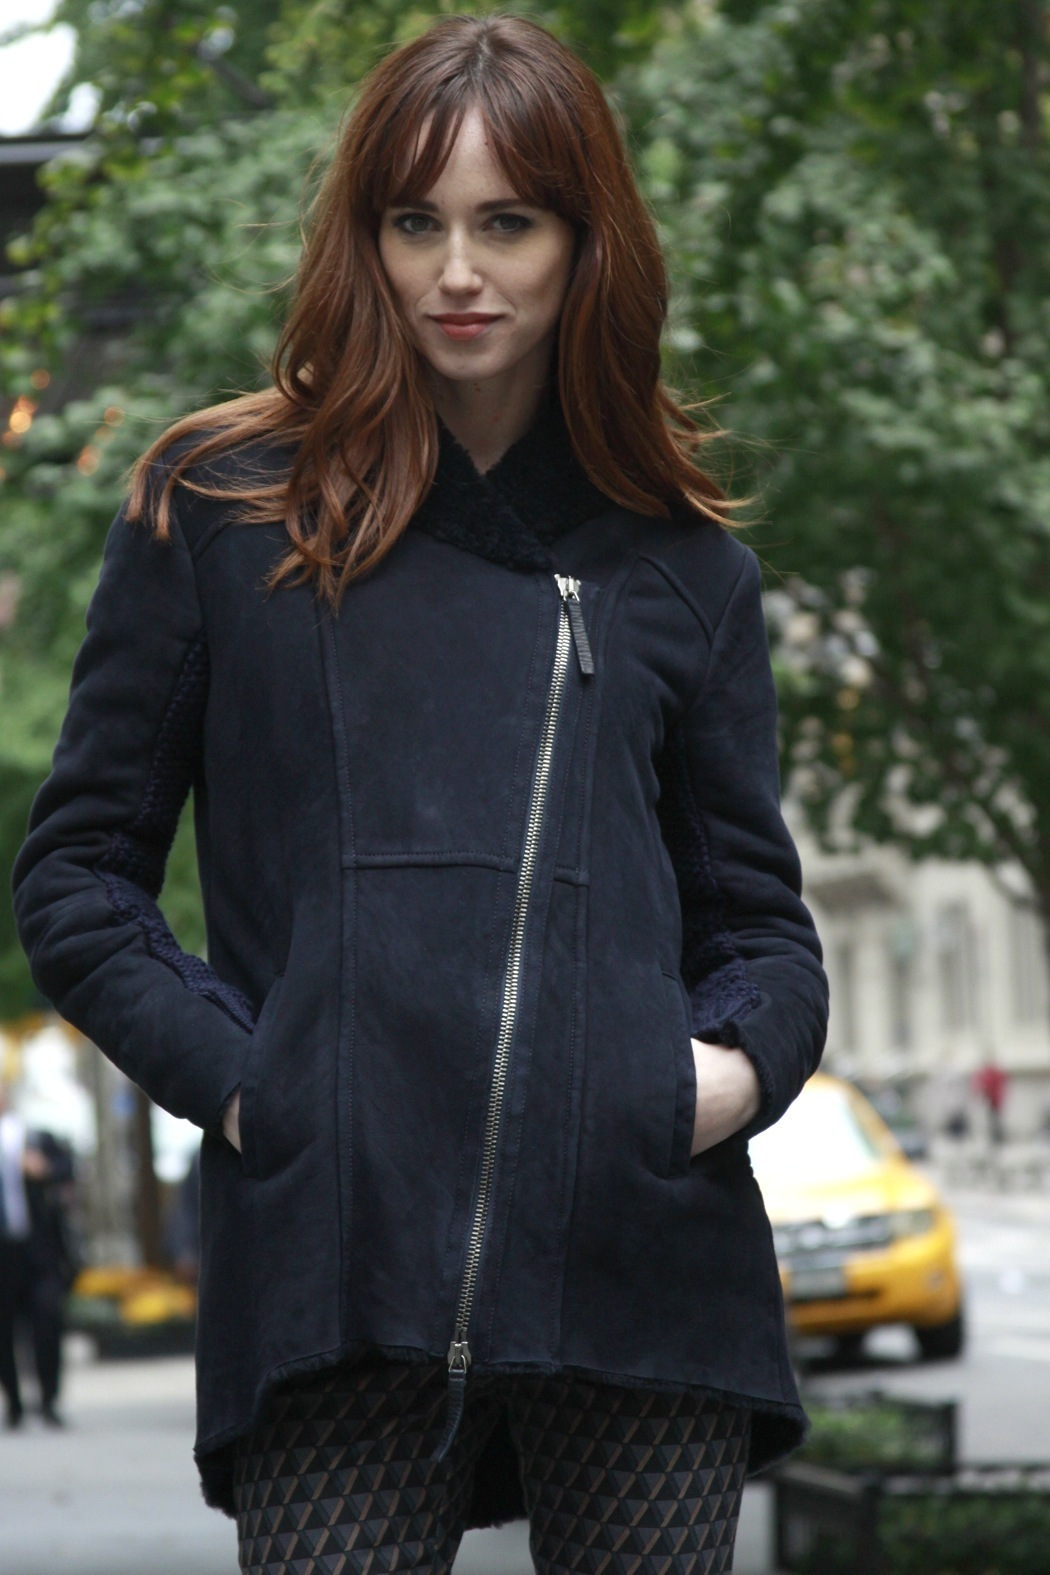 Brogden Navy Shearling Jacket from Harlem by SWING — Shoptiques